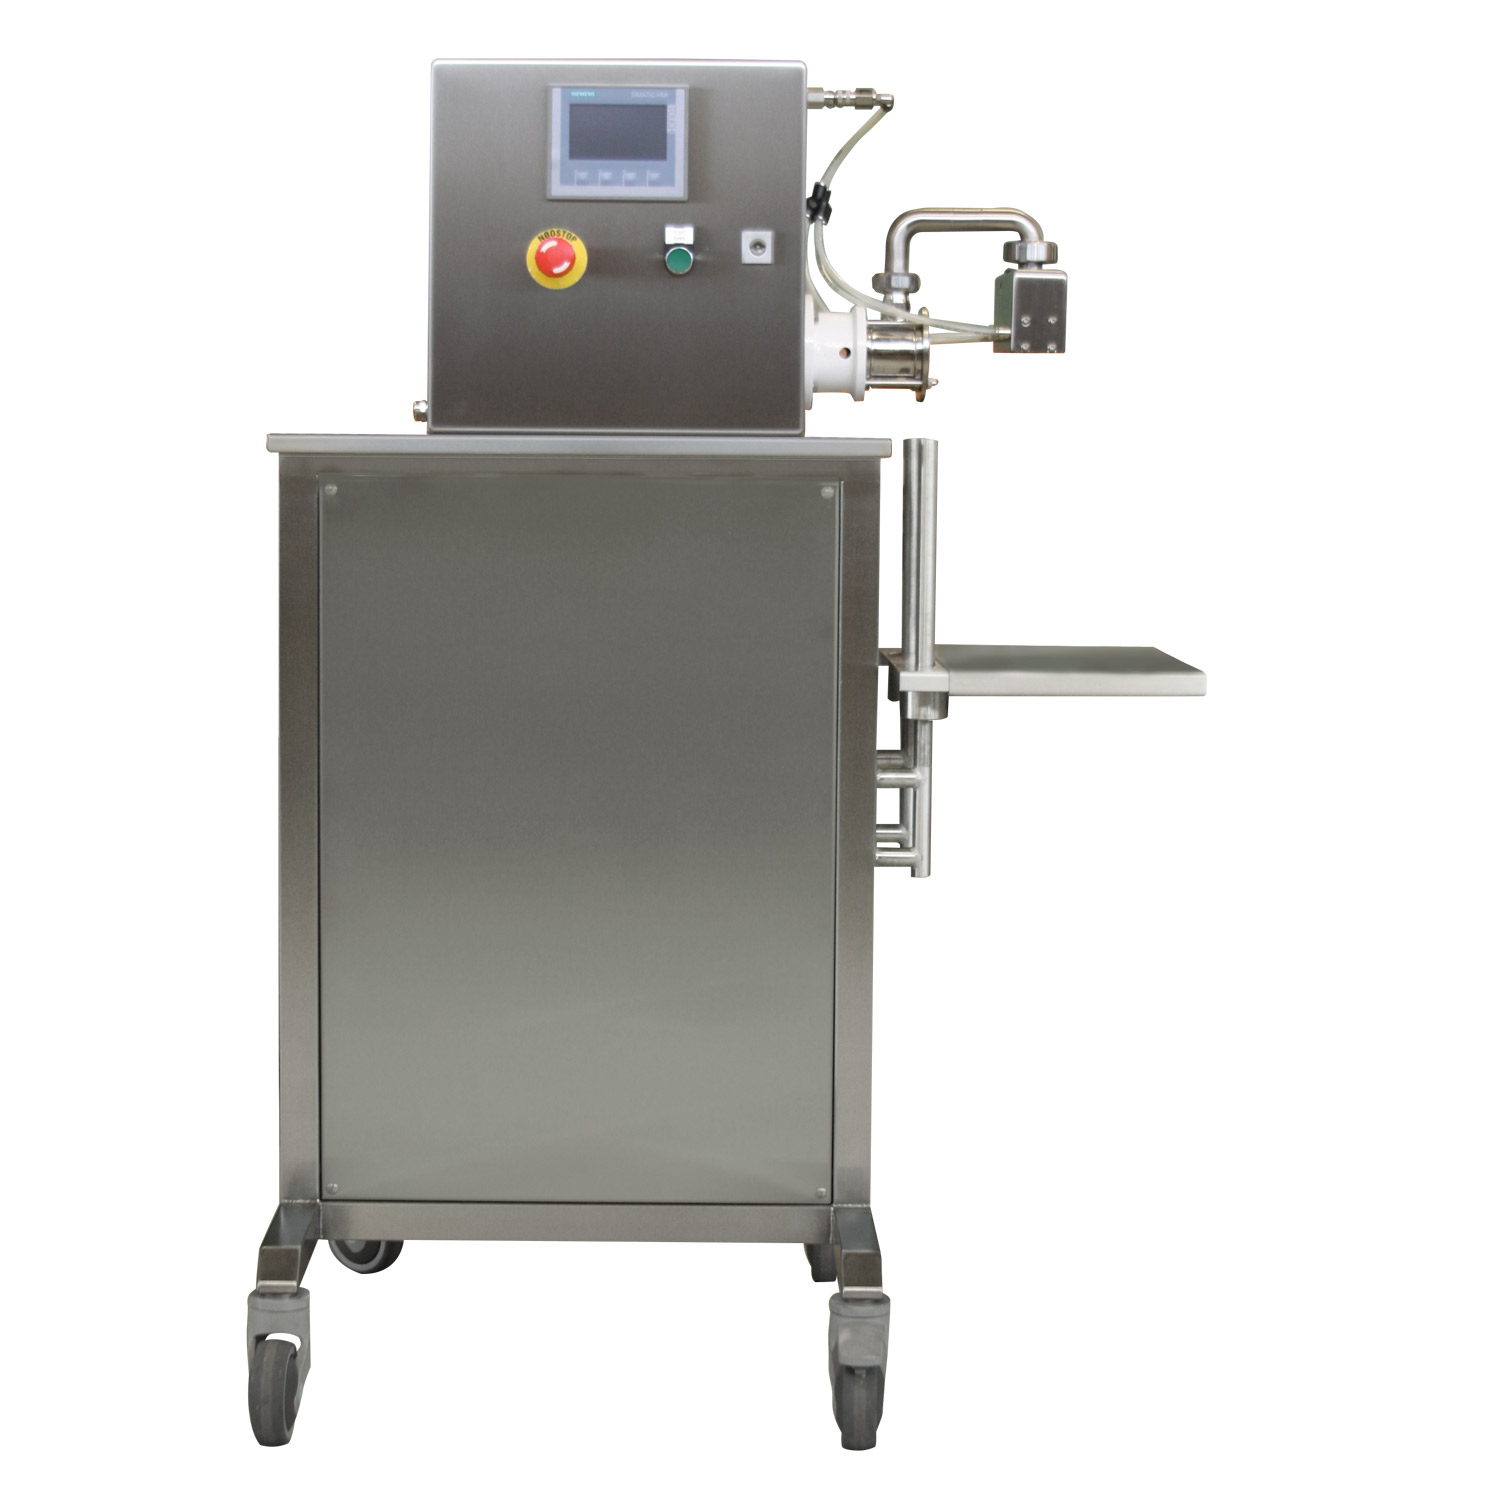 Hot Fill DOS-1 annosteluun ja pussitukseen. / Hot Fill DOS-1 for dosing and packing liquids.